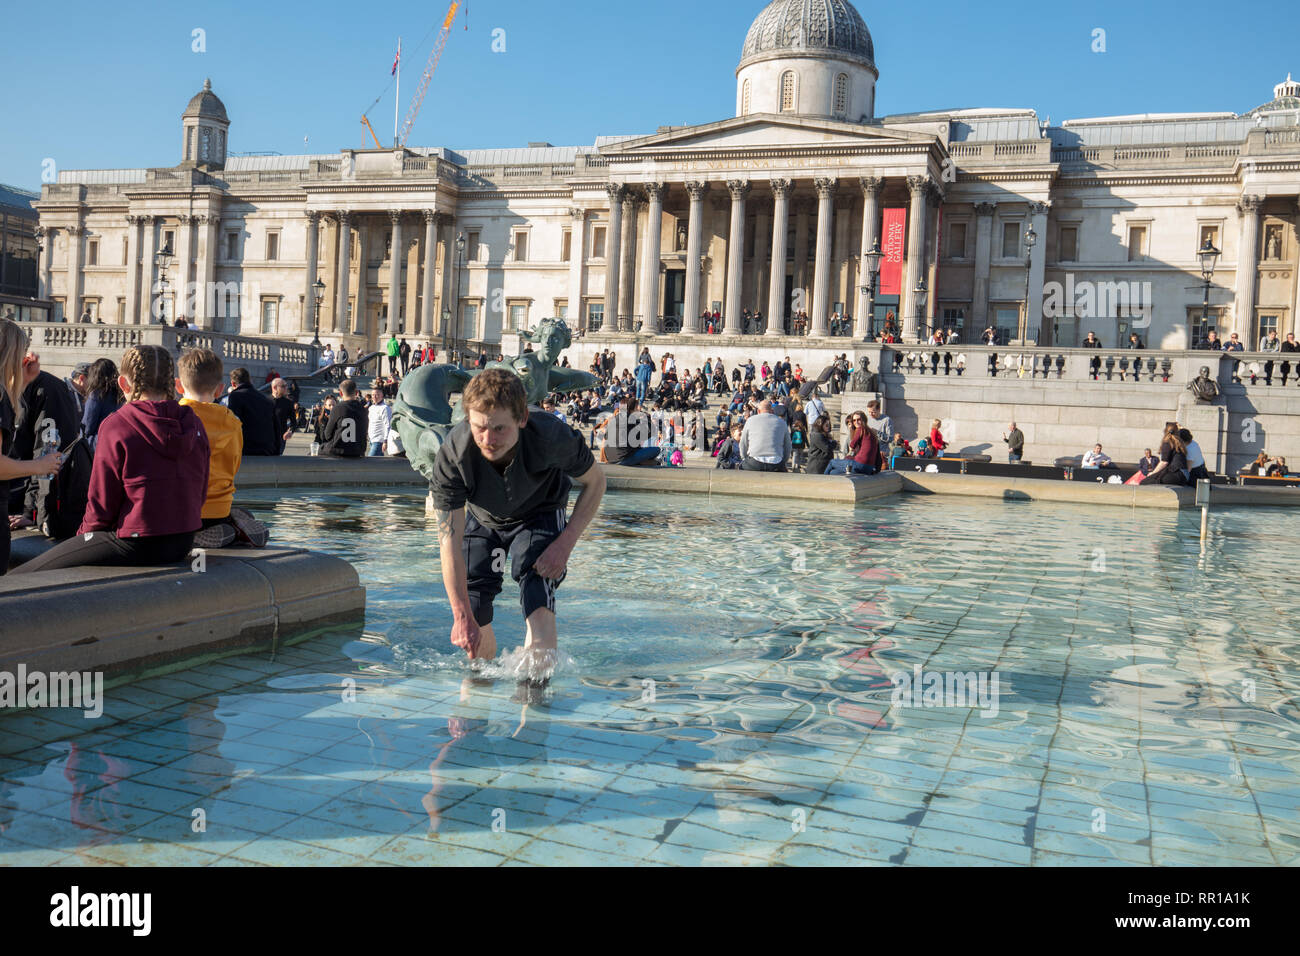 Homeless man looking for coins in water of the fountain in Trafalgar Square. Tourists and visitors enjoying the warm spring like weather in February - Stock Image